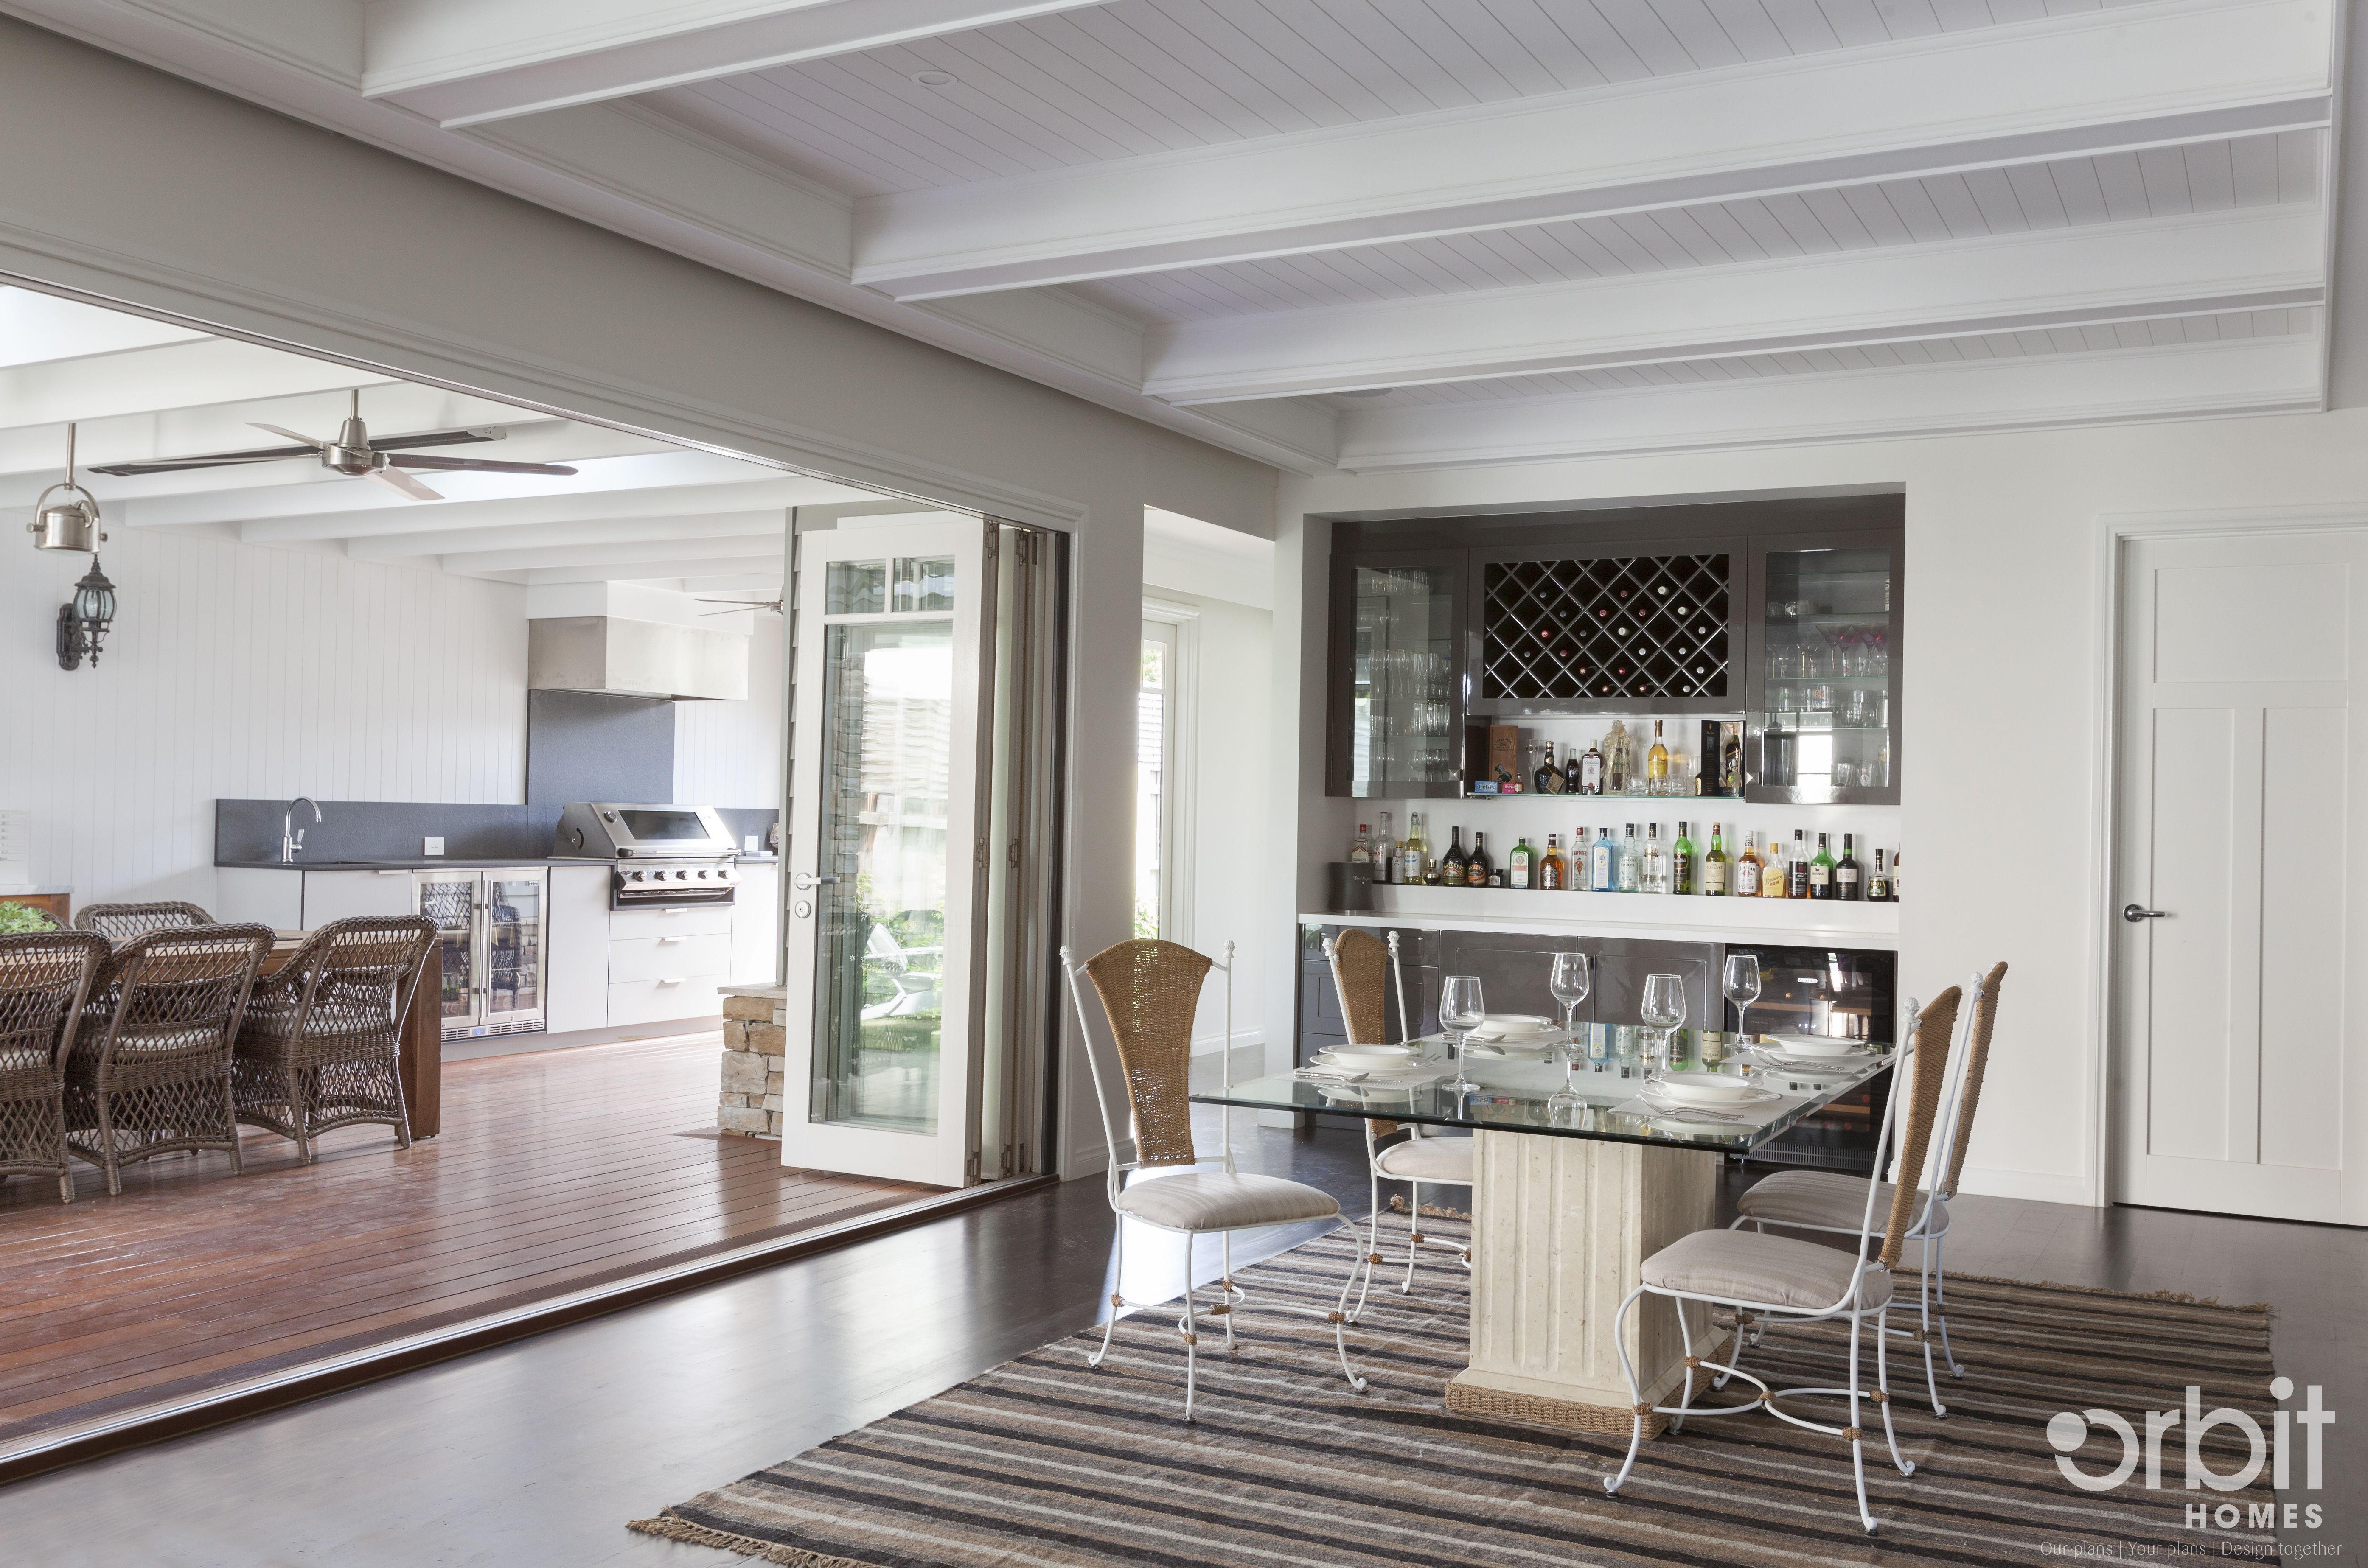 Orbit homes home builders - Hamptons Style Open Plan Living Area With Dining Area Opened Out Onto The Alfresco